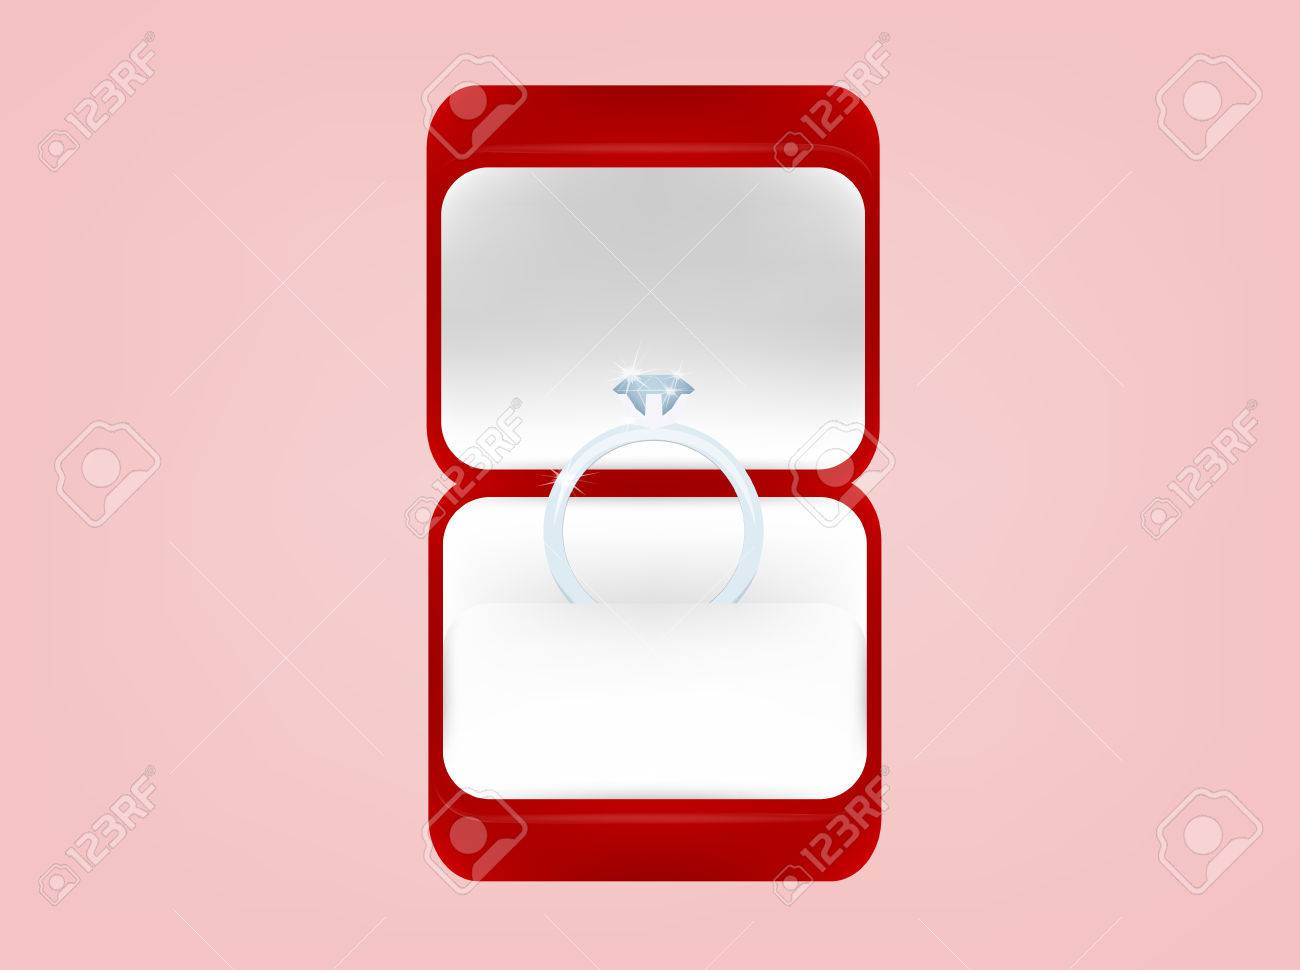 Beautiful Graphic Design Of Wedding Ring In Red Box,wedding Concept ...